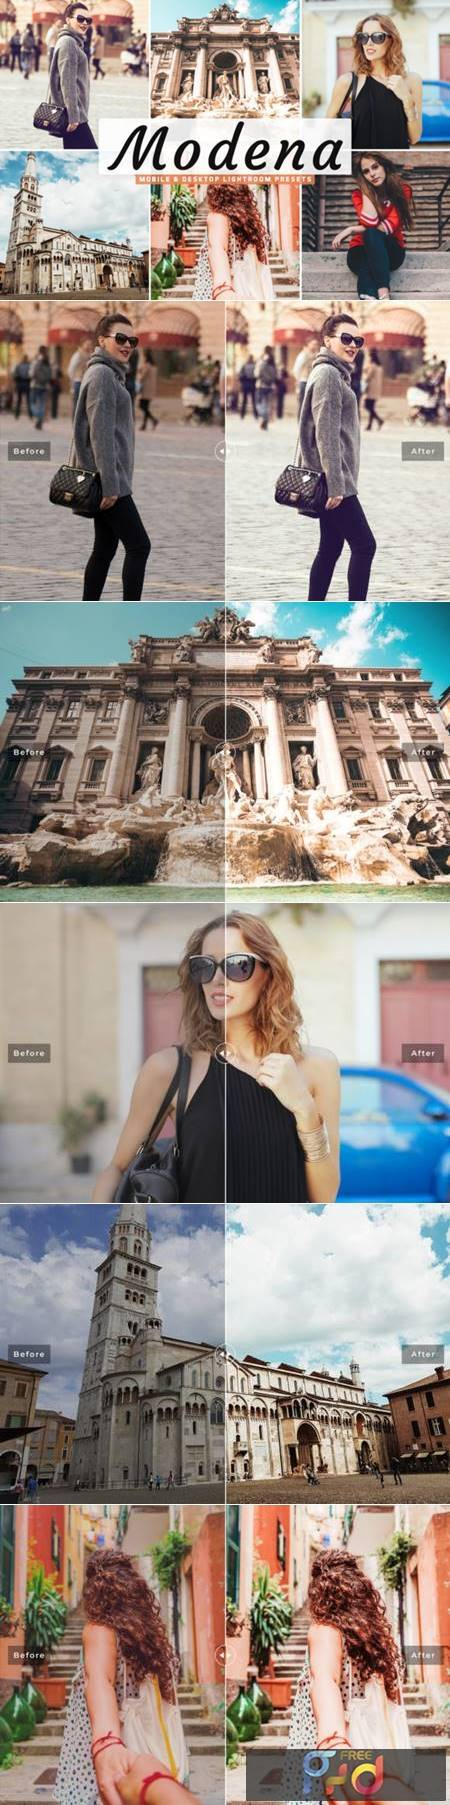 Modena Lightroom Presets Pack 4222589 1